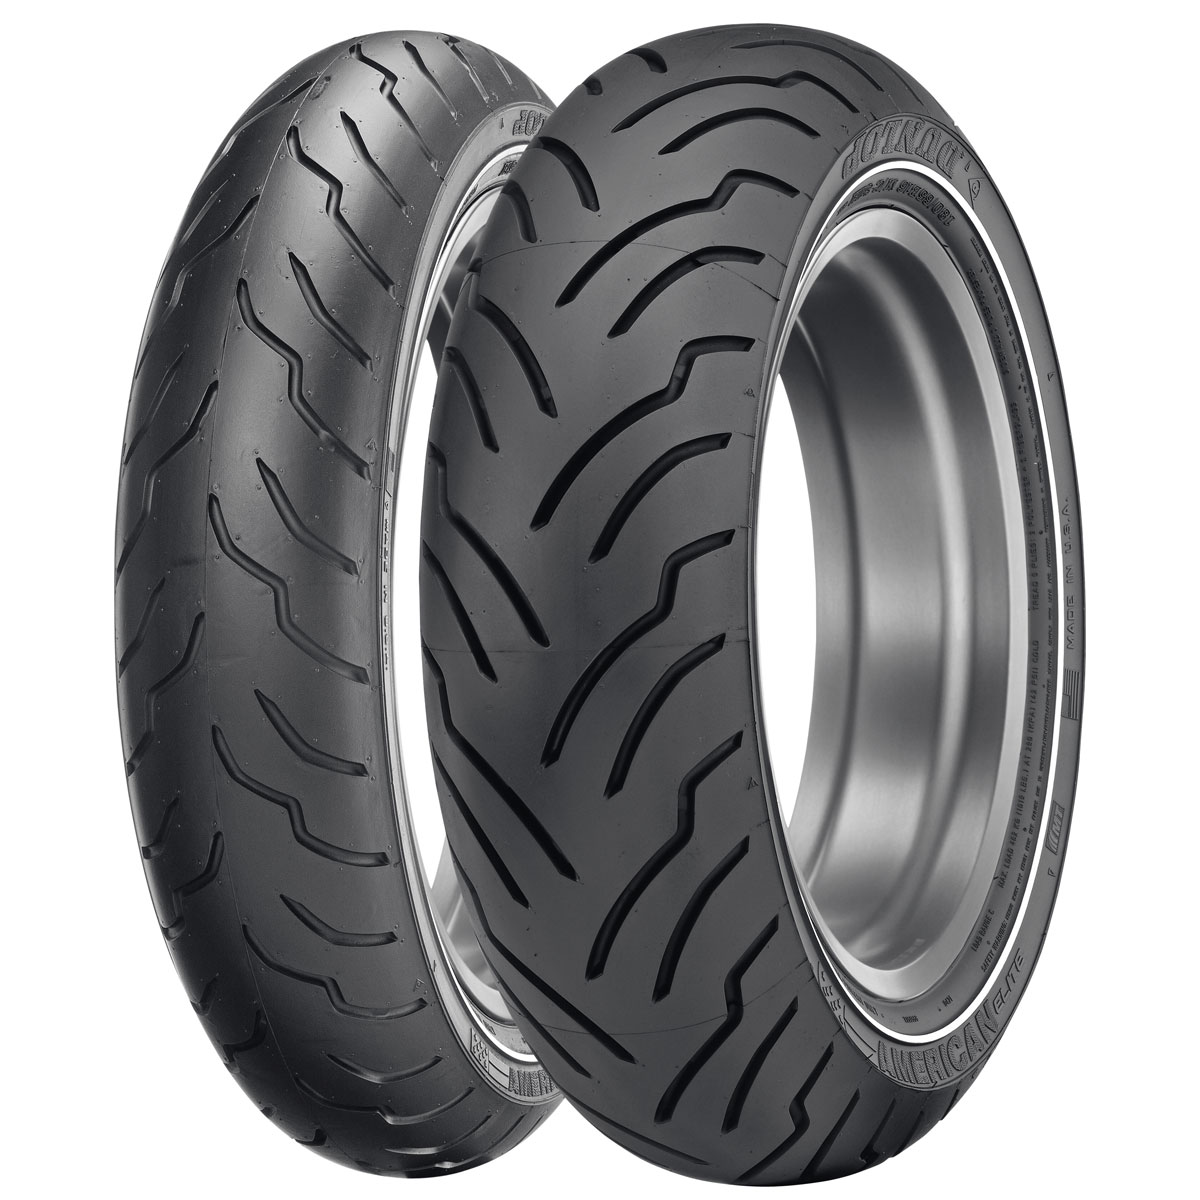 Dunlop American Elite MT90B16 Narrow Whitewall Rear Tire